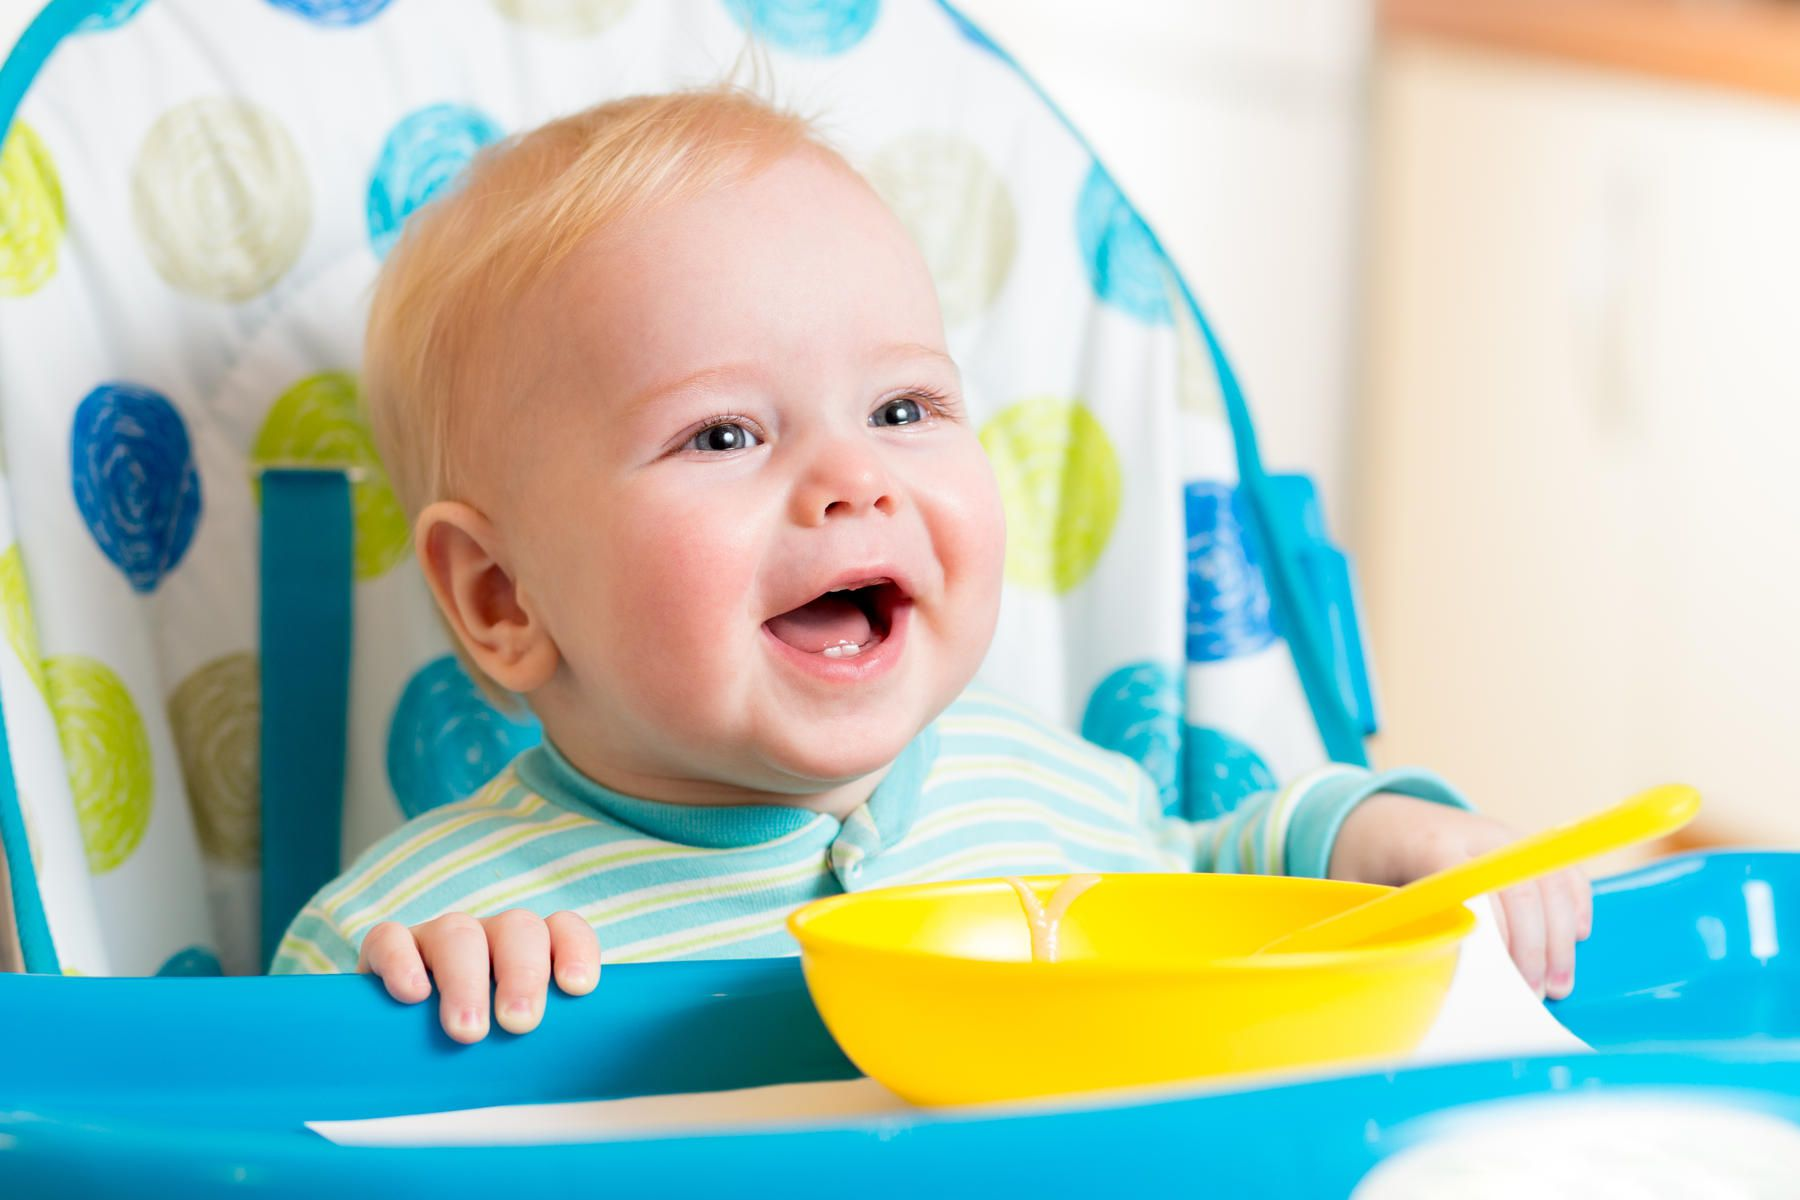 Newborn Toys Babycenter 20 Foods To Feed Your Baby Before Age 1 Parents